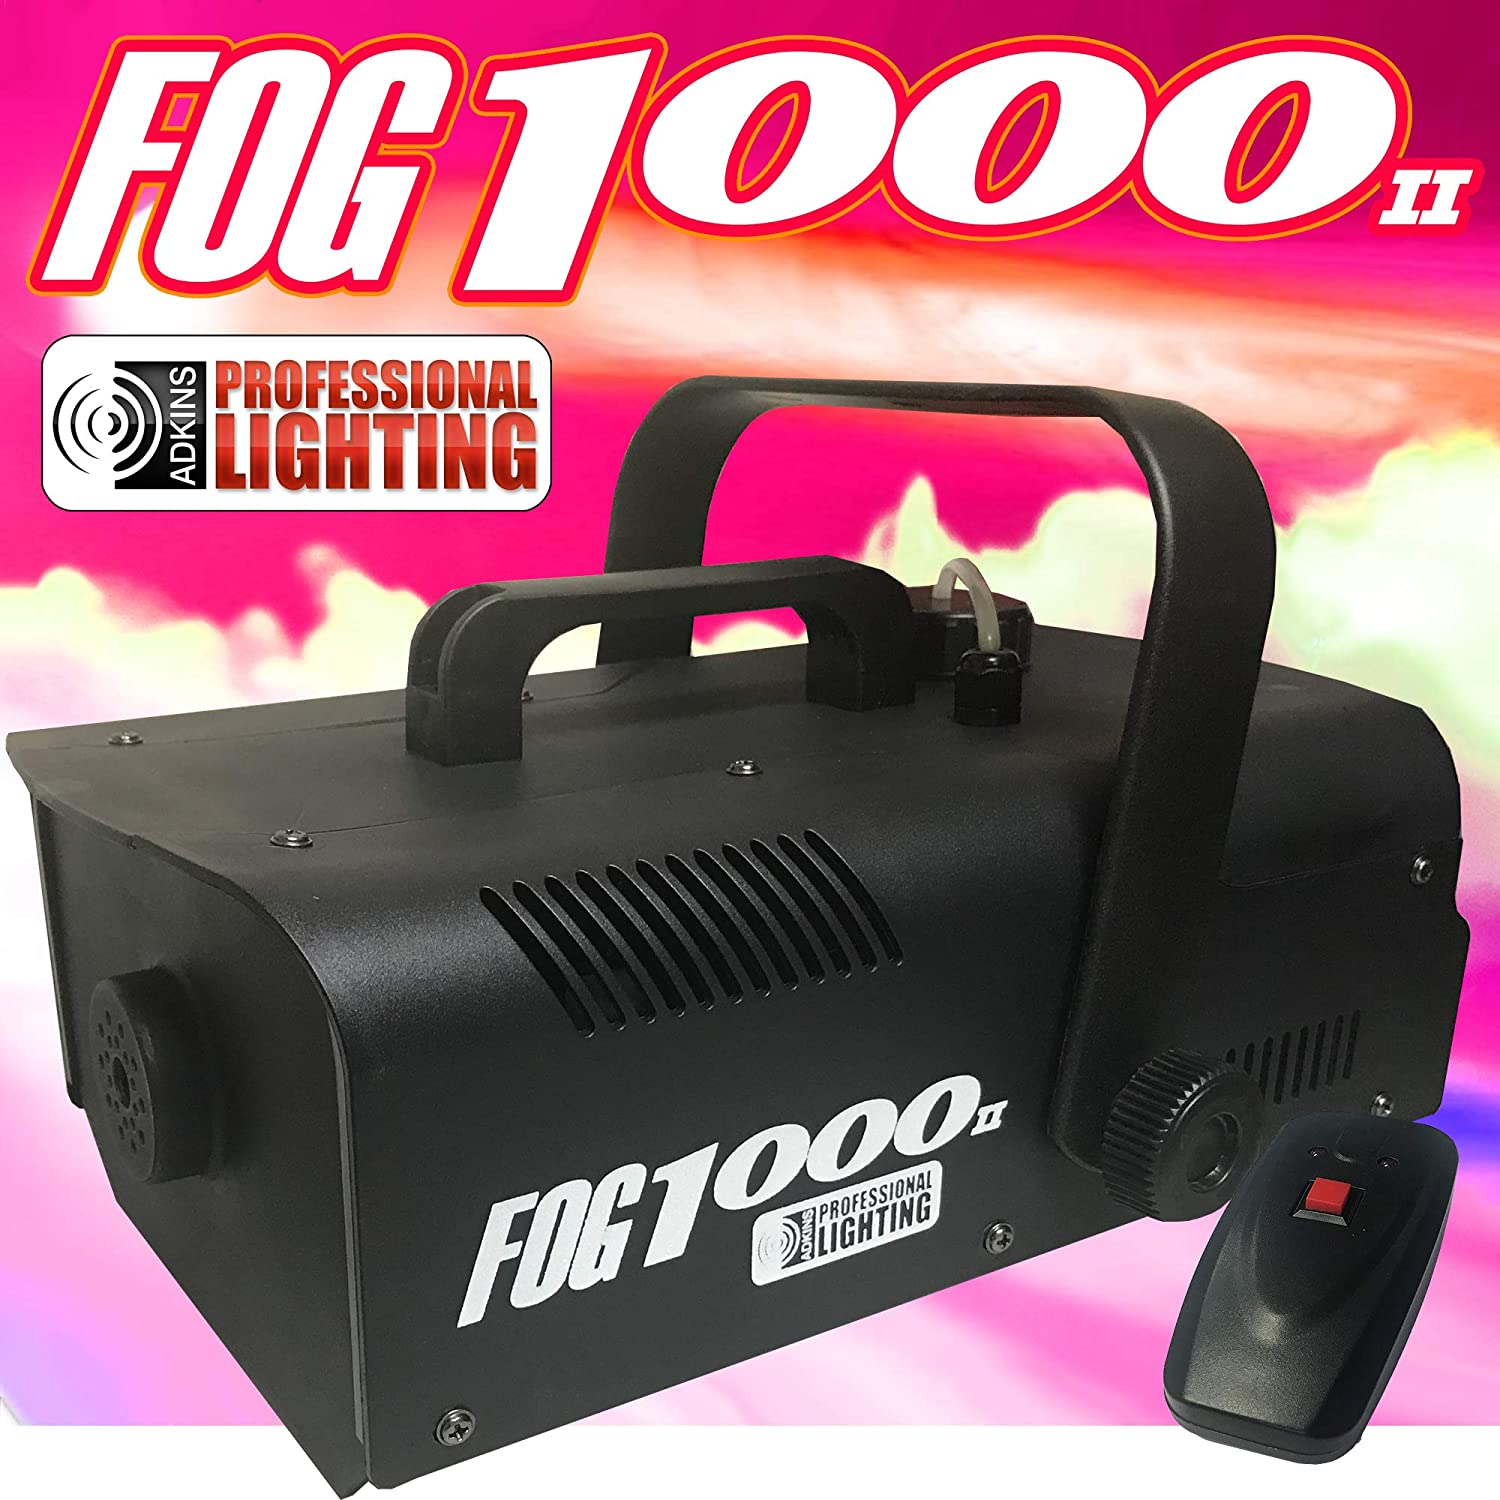 Fog Machine - 1000 Watt W/Remote - Impressive 8,000 Cubic ft. per minute - Adkins Professional Lighting FOG1000II